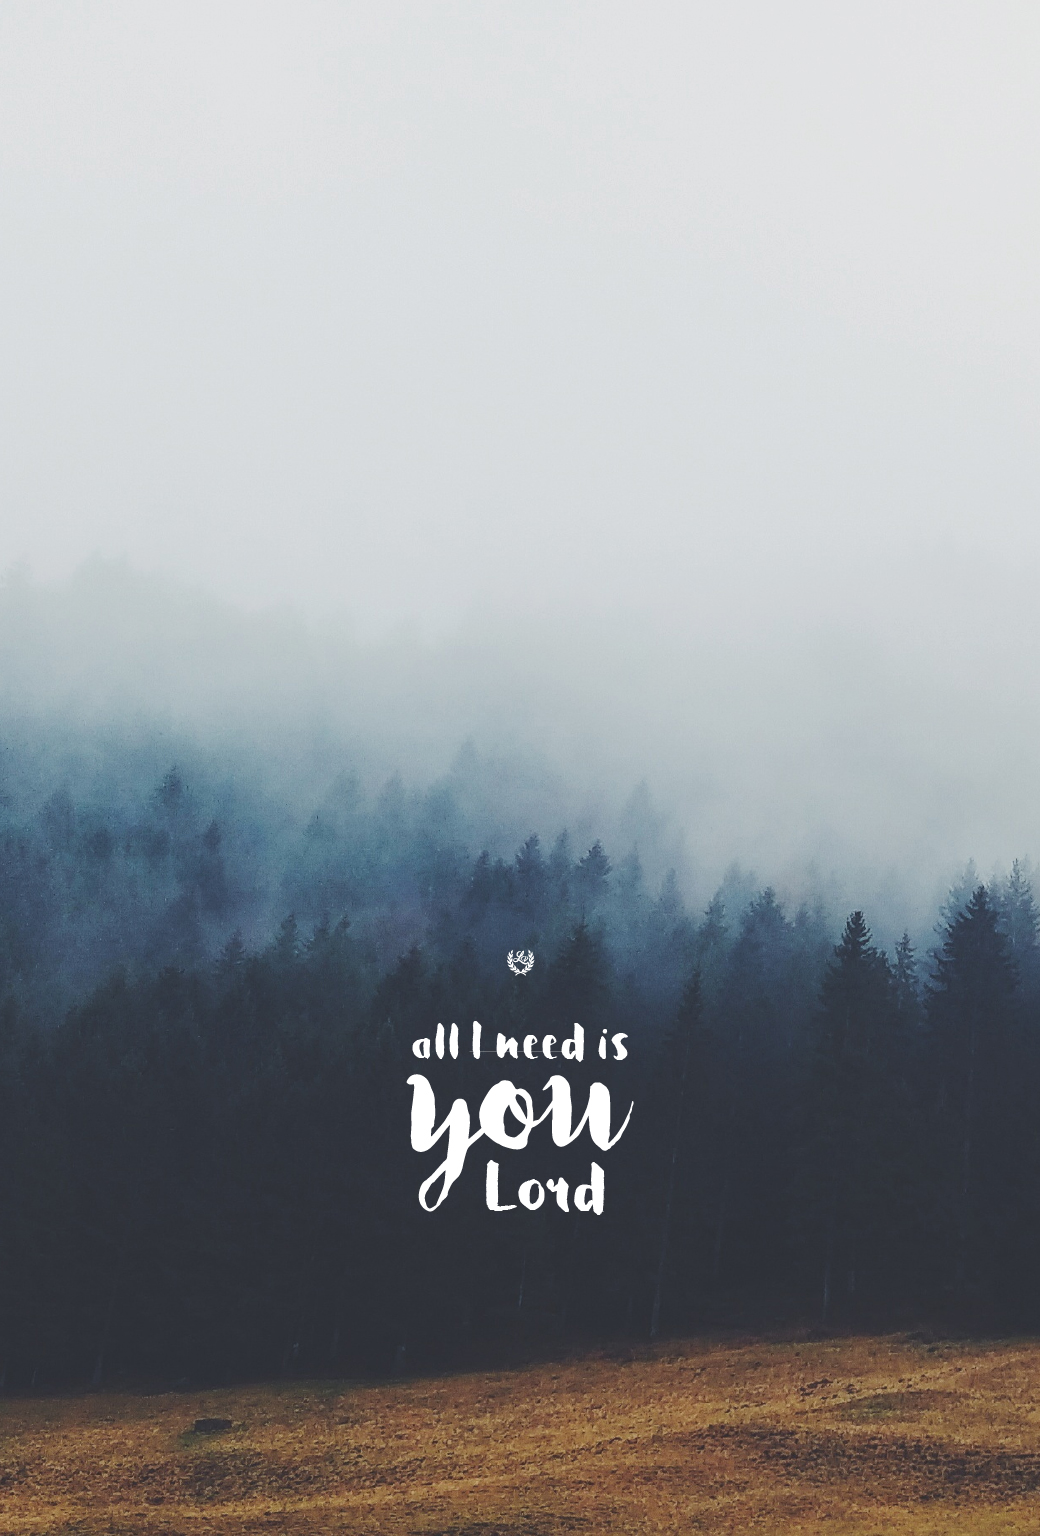 aececdaeaa-all-i-need-is-you-lord-the-lord-wallpaper-wp4401297